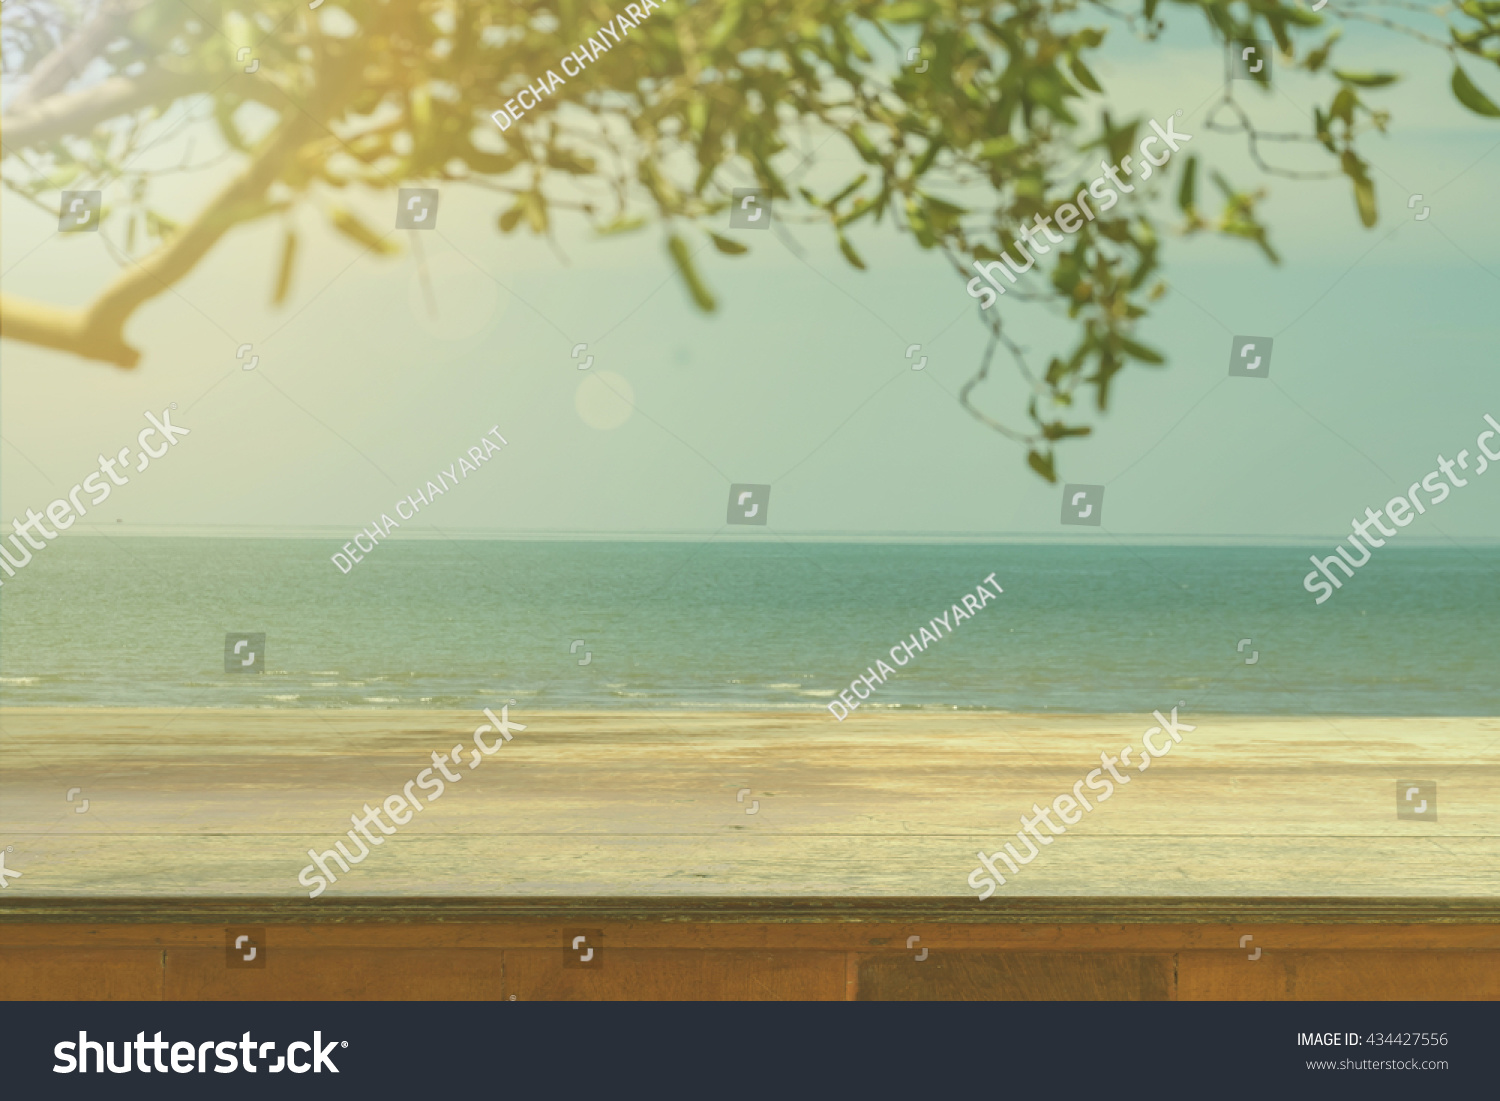 Wood Table Top On Blurred Blue Sea And White Sand Beach Background    Vintage Filter And